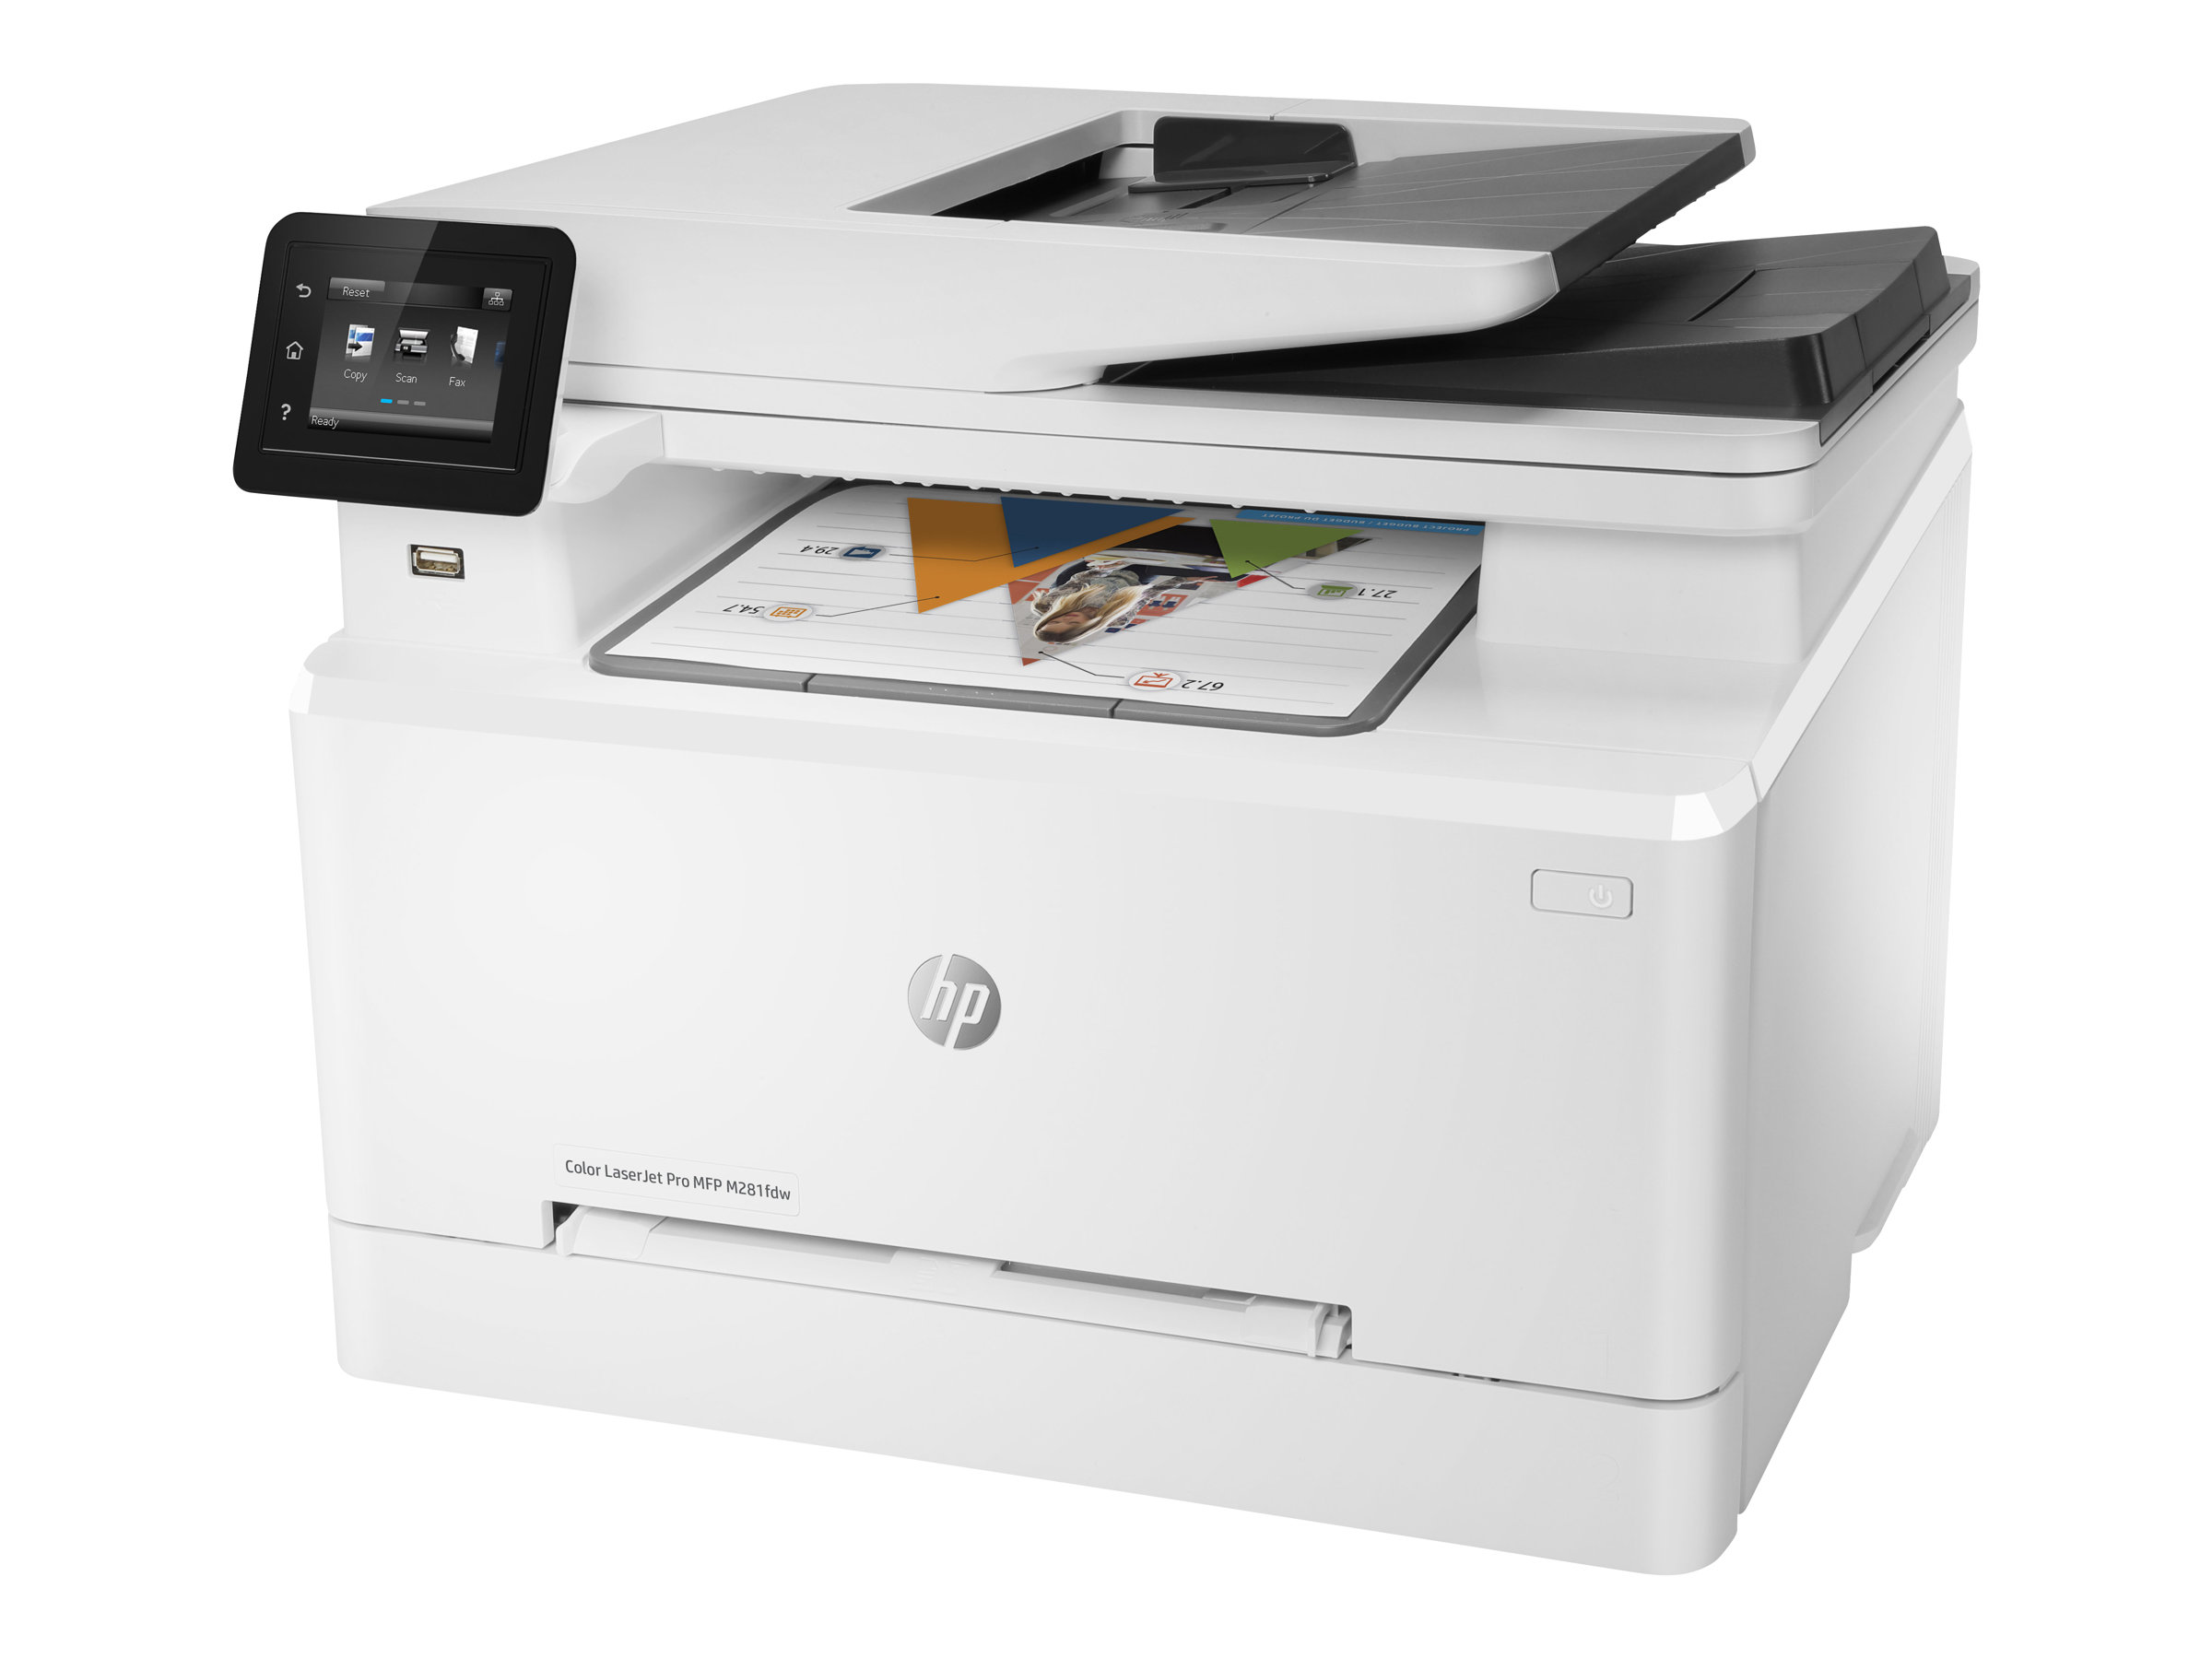 HP Color LaserJet Pro MFP M281fdw - Multifunktionsdrucker - Farbe - Laser - Legal (216 x 356 mm) (Original) - A4/Legal (Medien)